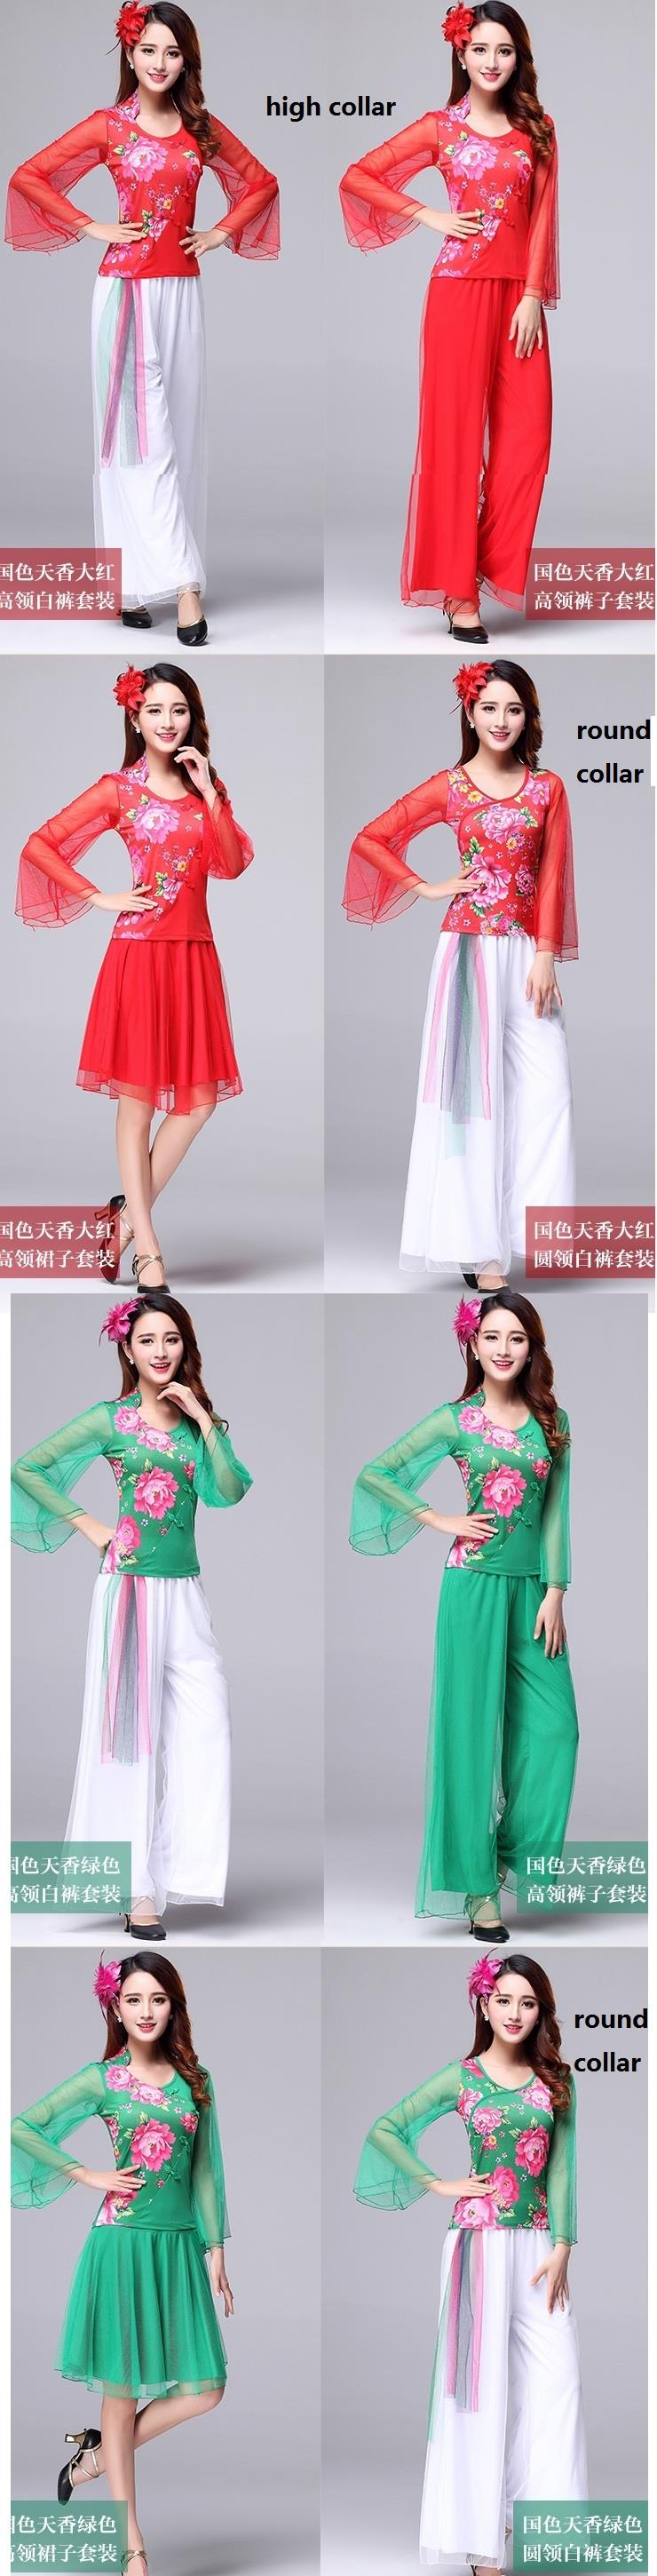 Chinese style dance wear Tarian Cina skirt or long pants set M to 6XL